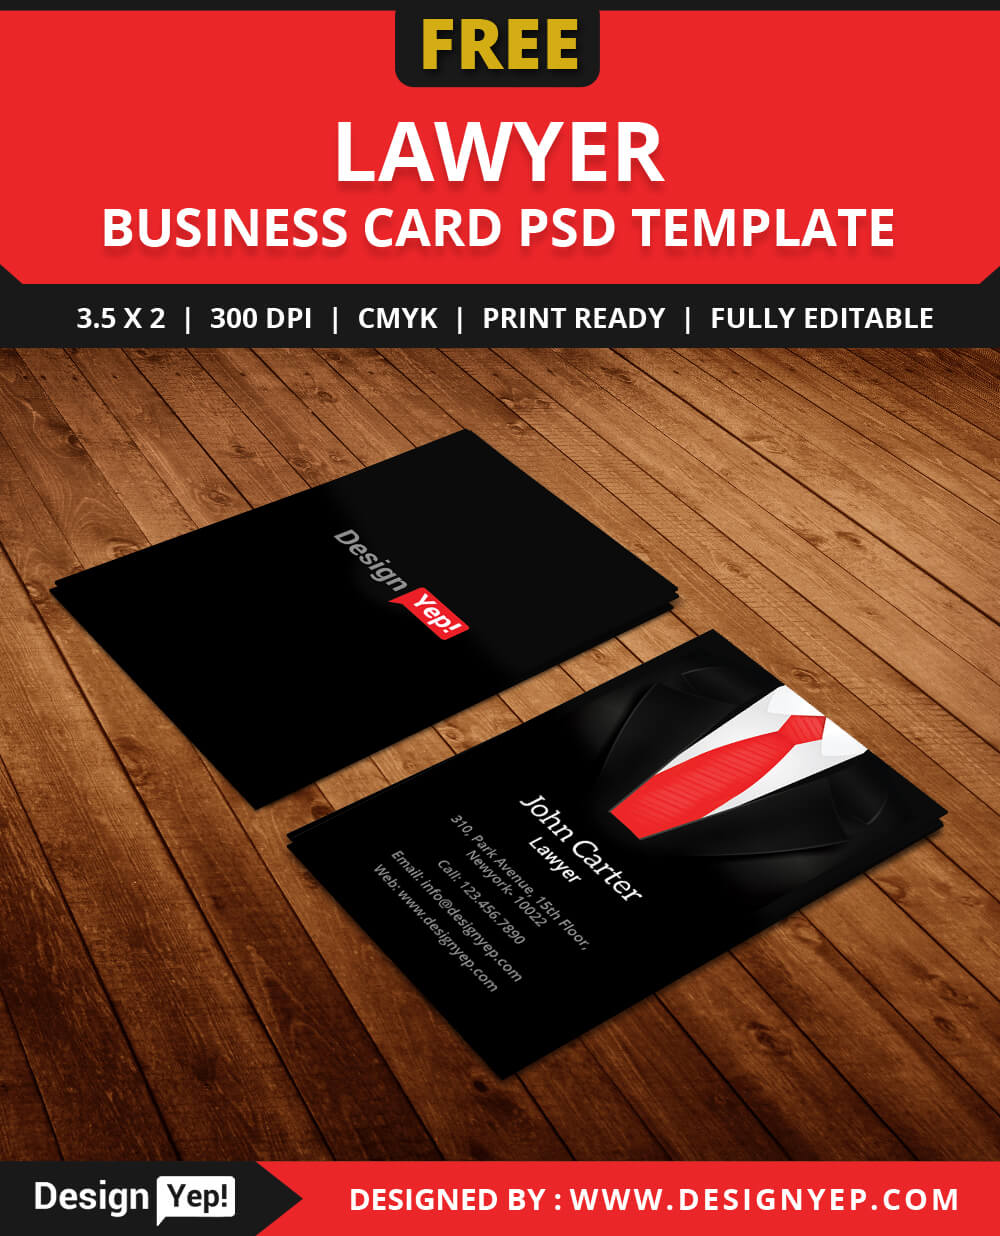 Free Lawyer Business Card Template Psd – Designyep For Calling Card Free Template